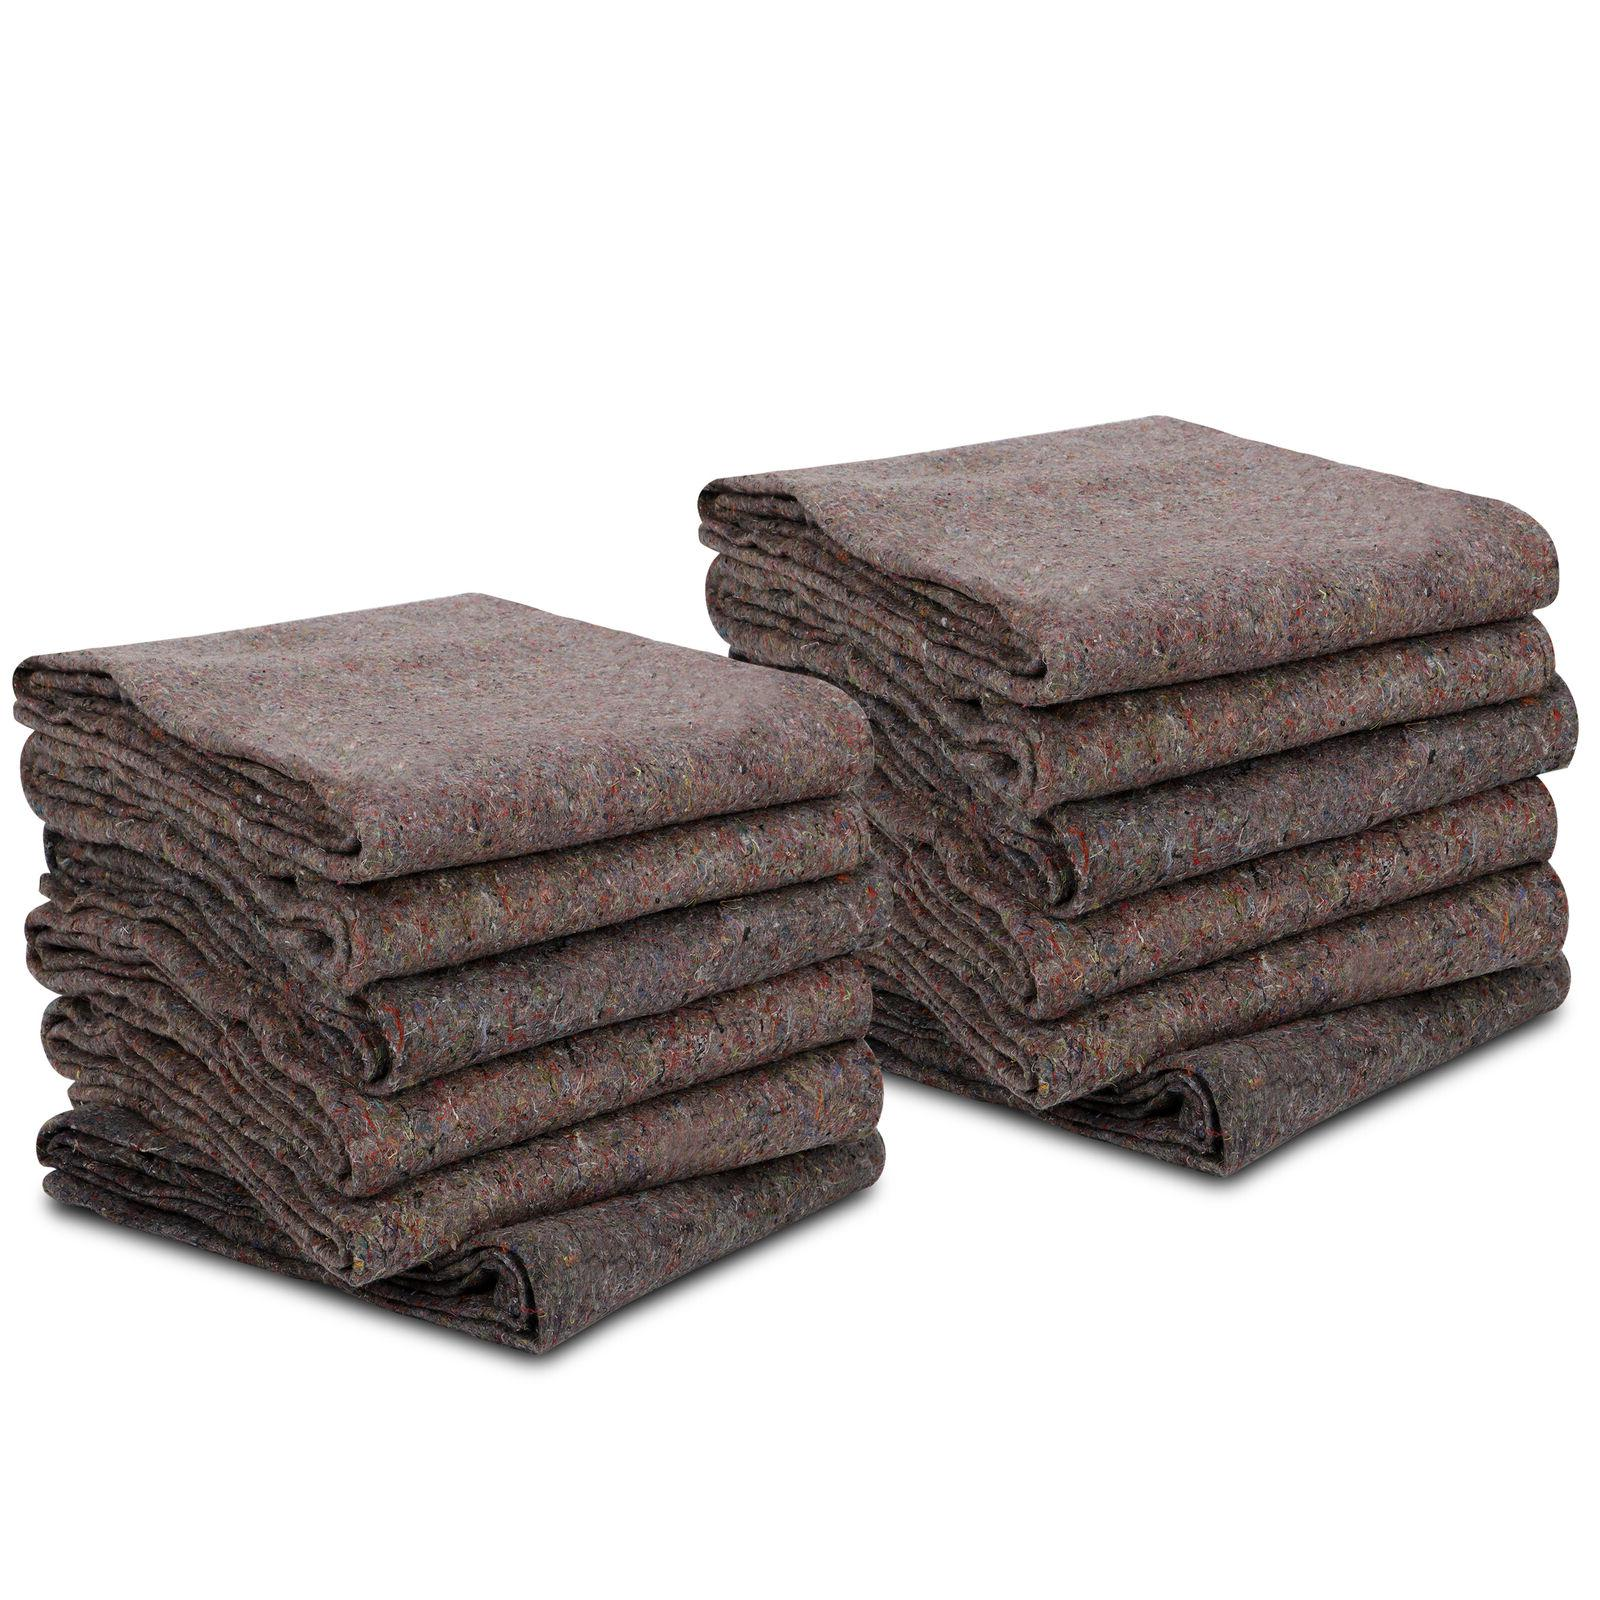 12 Blankets Duty Shipping Furniture Protection Pads